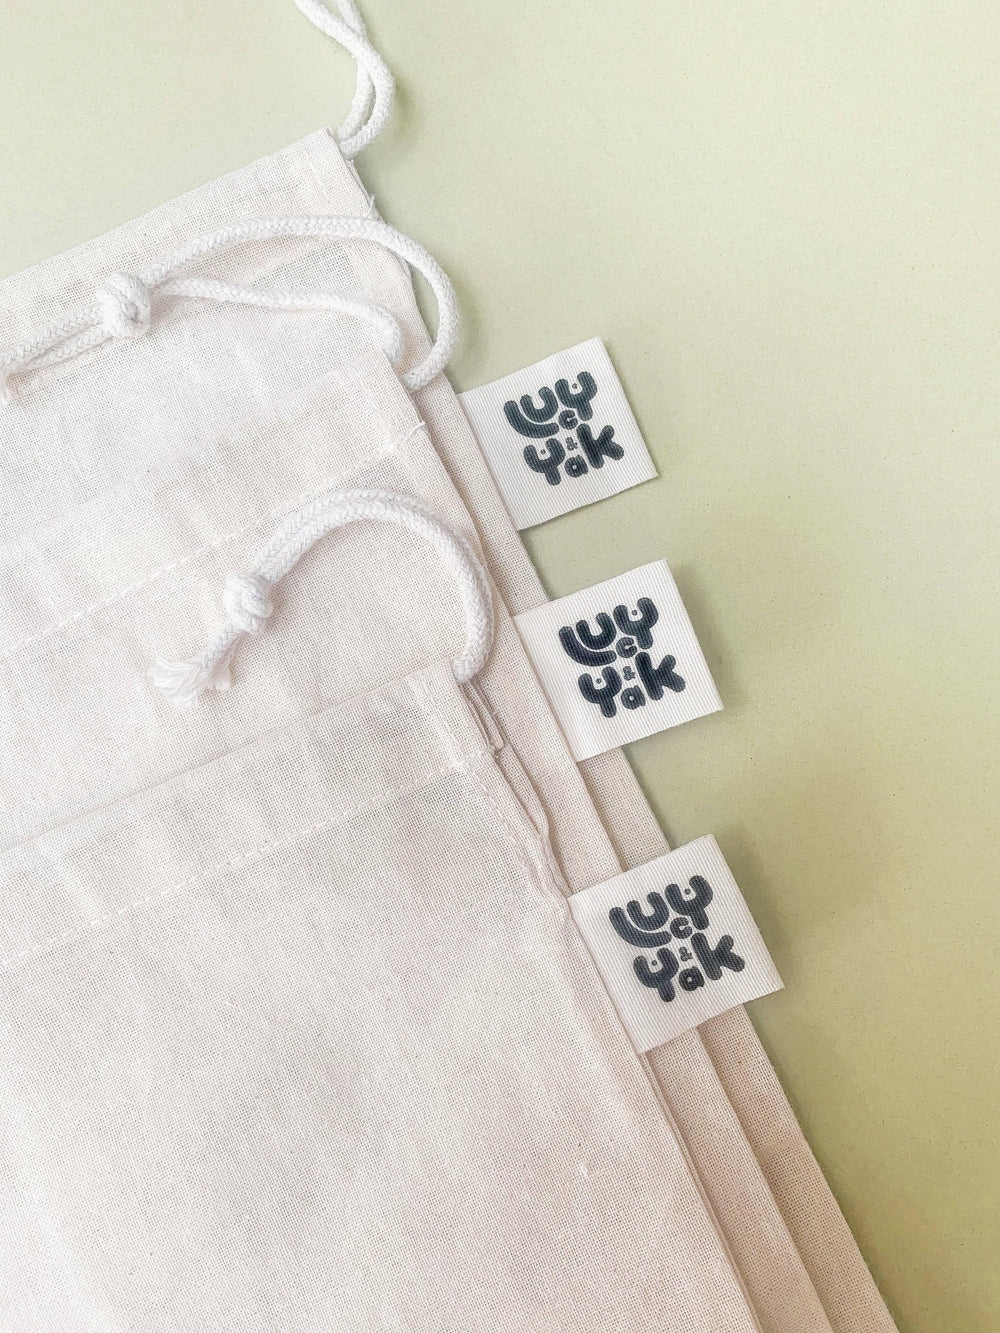 Lucy & Yak Bag Organic Cotton Muslin Produce Bag Pack of 3